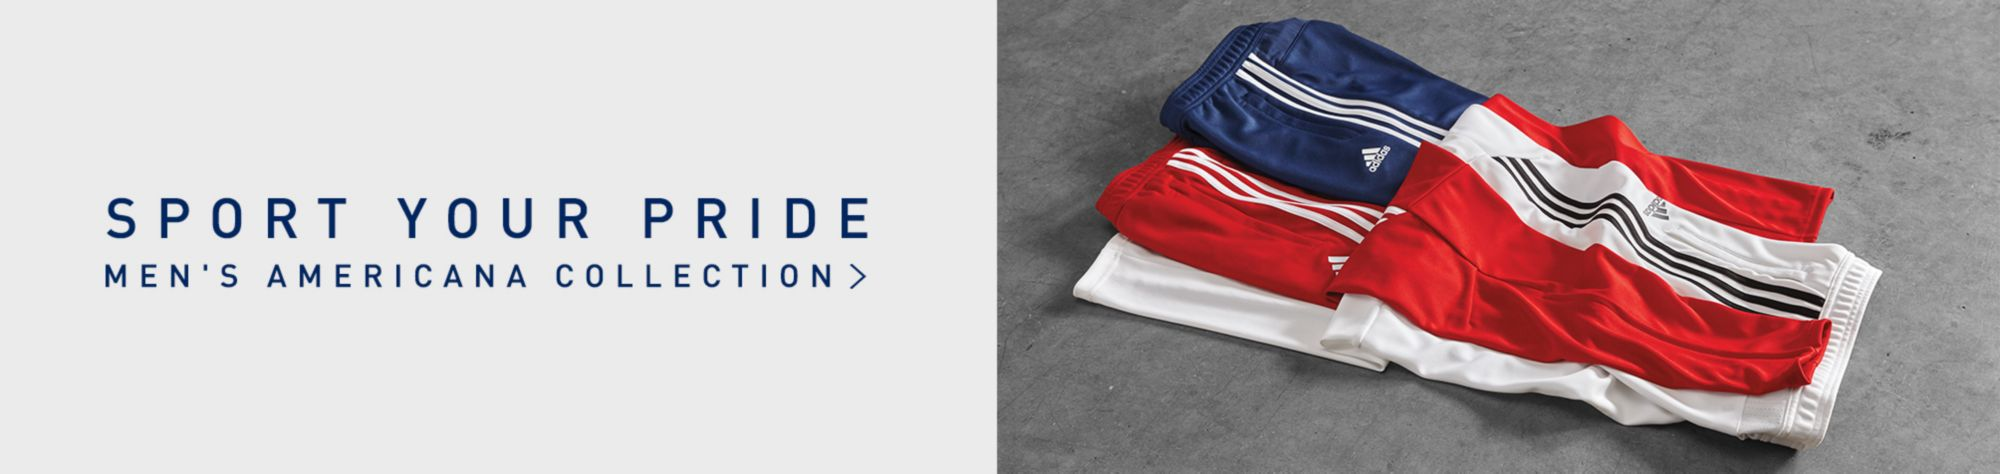 Sport Your Pride Men's Americana Collection